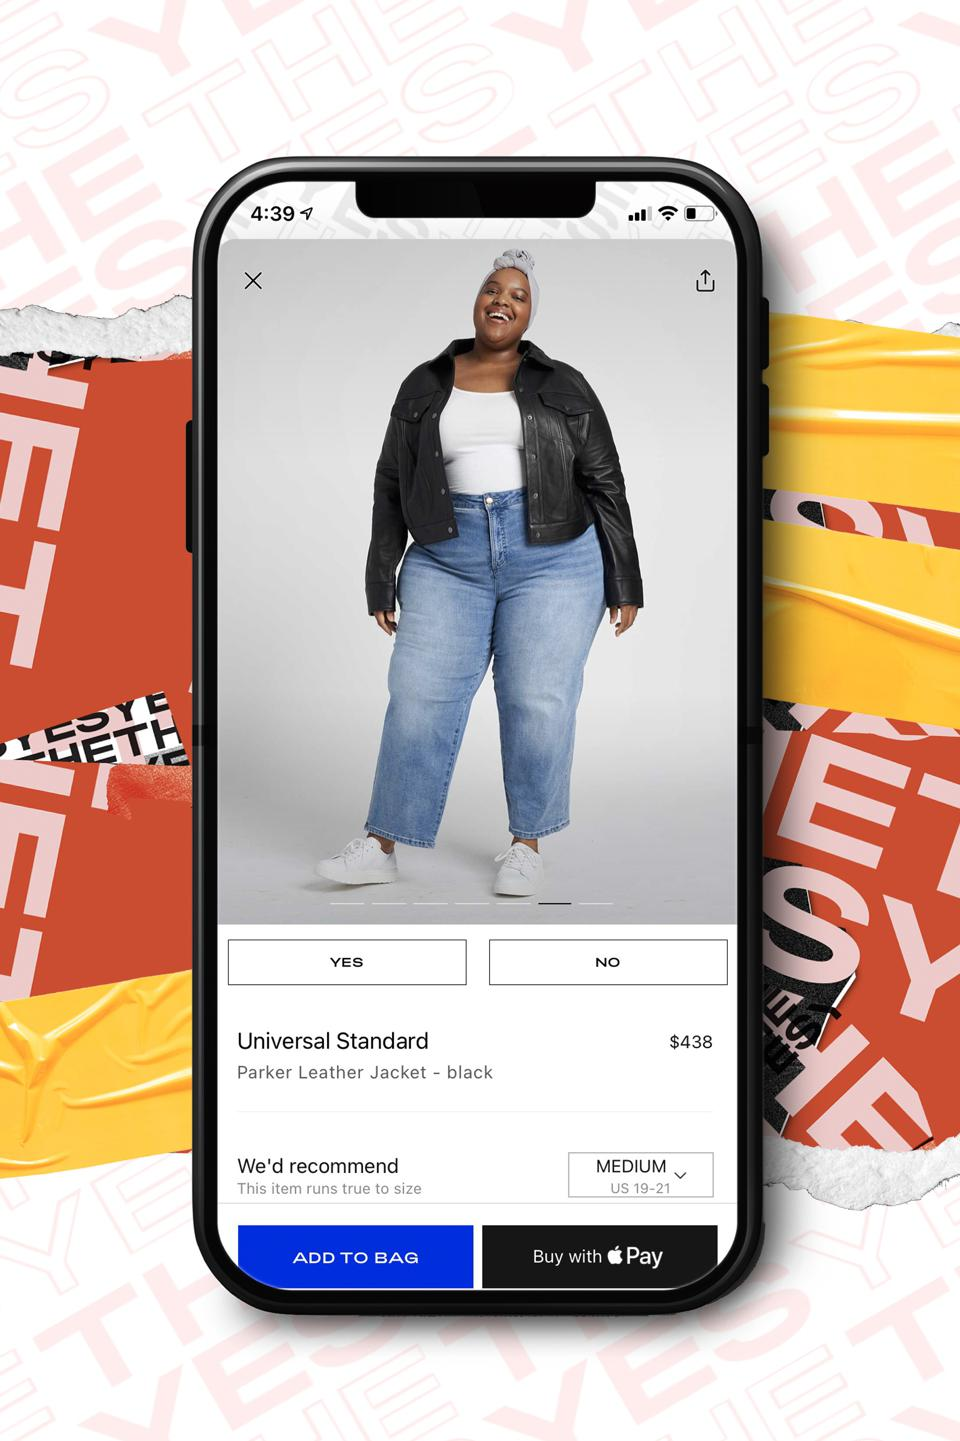 Phone with woman wearing jeans and jean jacket on a shopping app